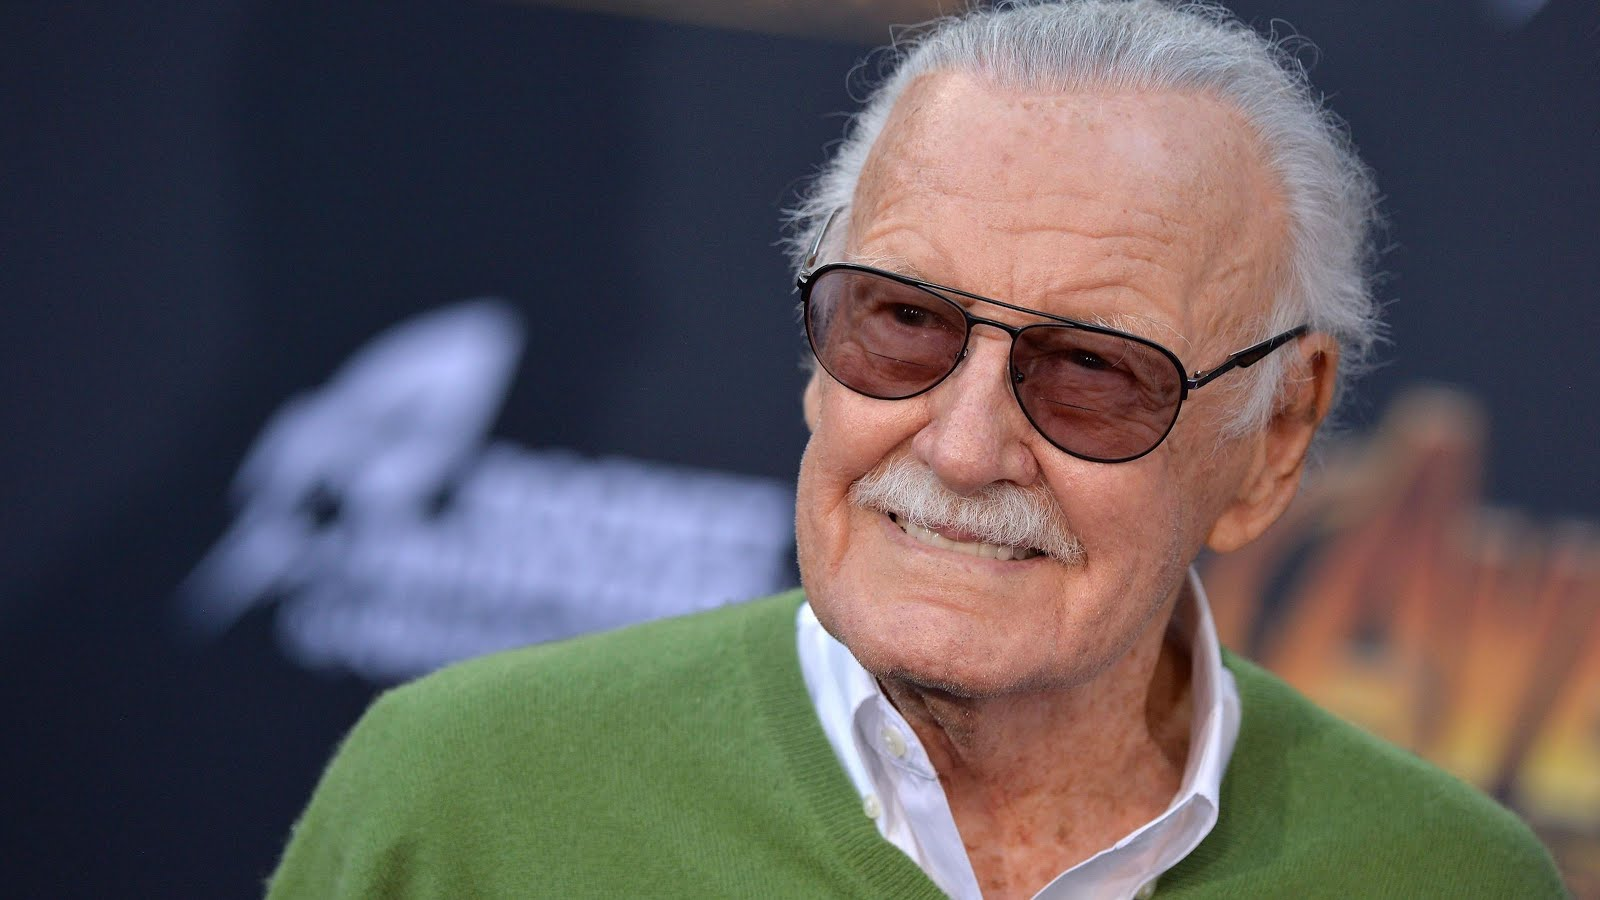 STAN LEE THE MARVEL: DEAD AT 95